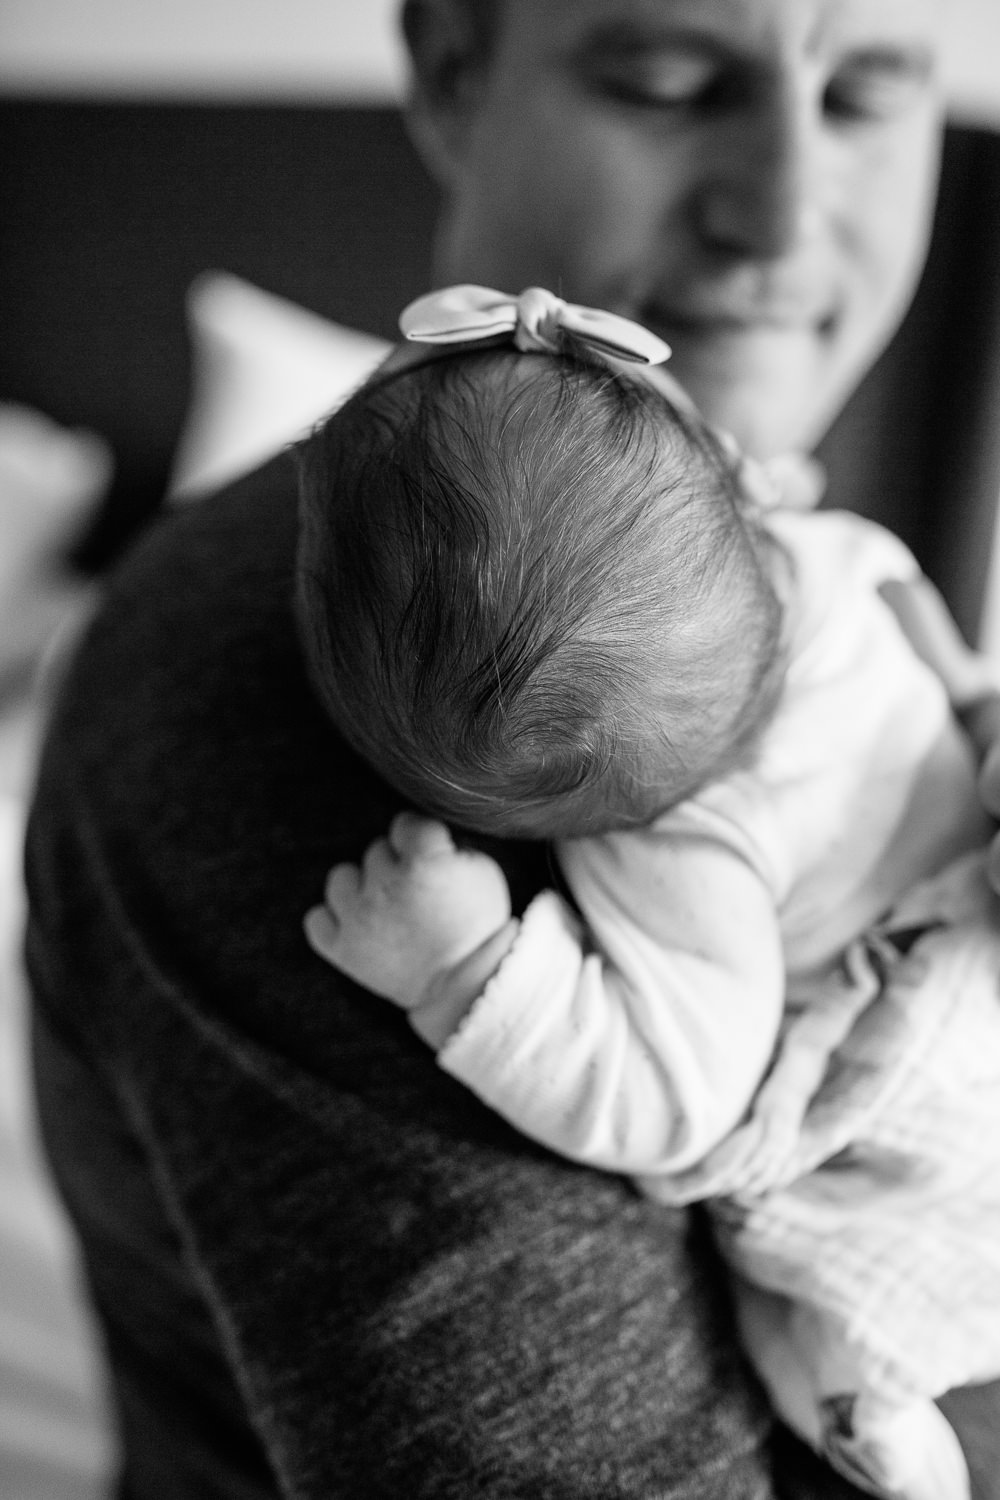 dad sitting on edge of bed holding 2 week old baby girl in onesie and swaddle, sleeping on father's shoulder, close up of hair -GTA In-Home Photography